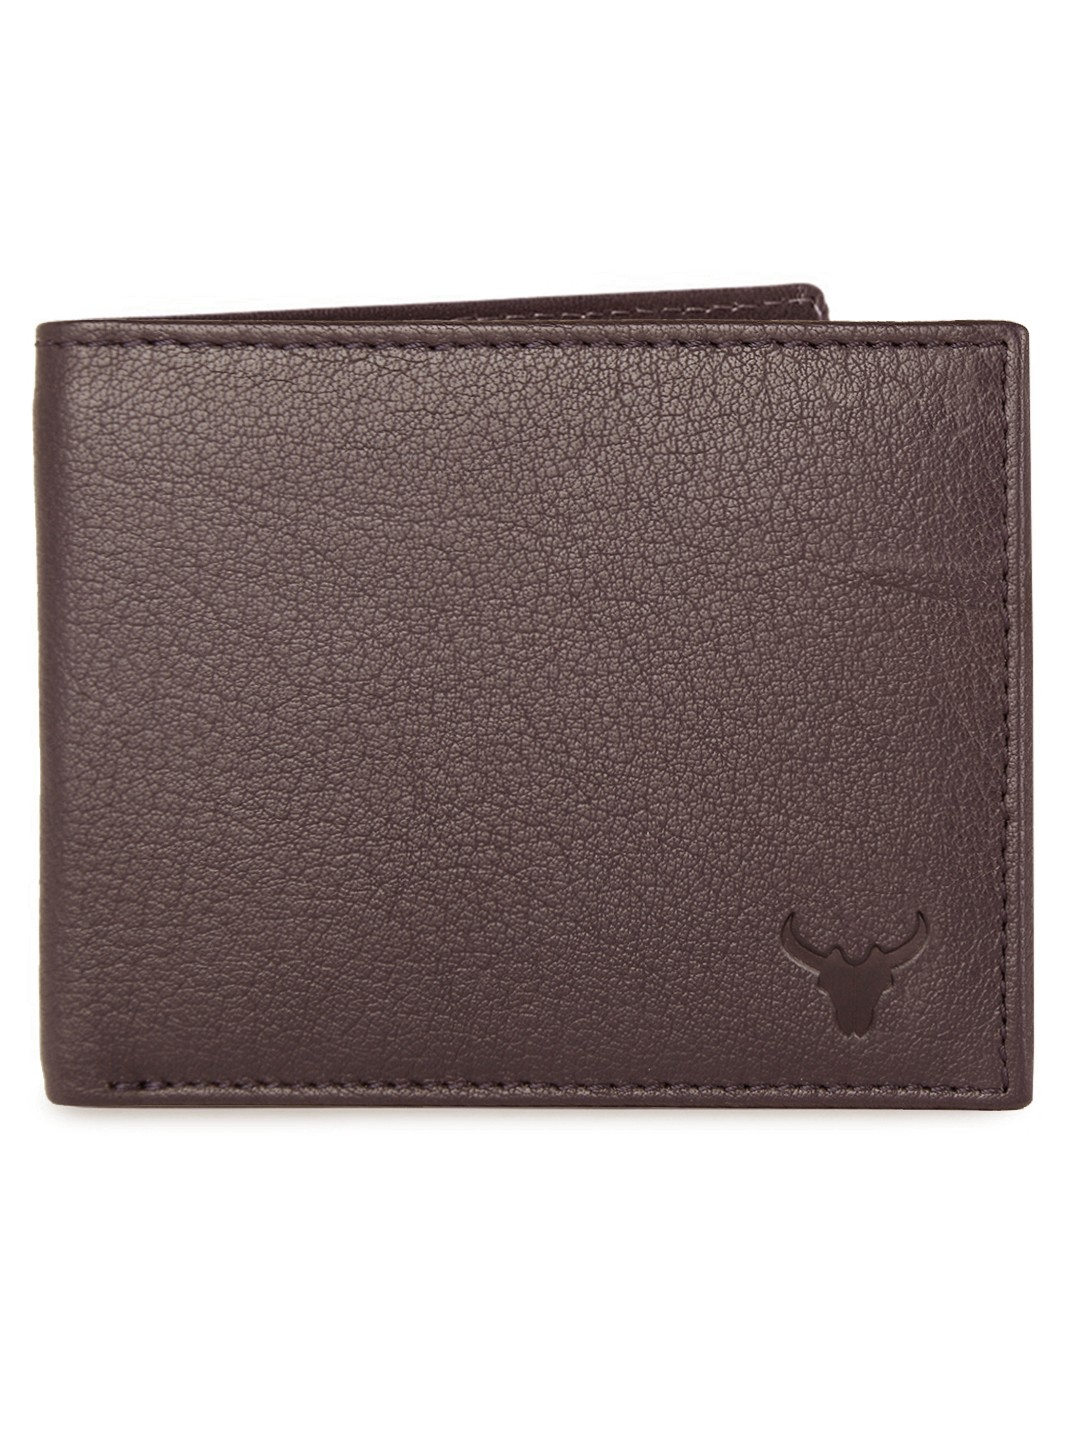 Napa Hide | Napa Hide RFID Protected Genuine High Quality Brown Leather Wallet For Men